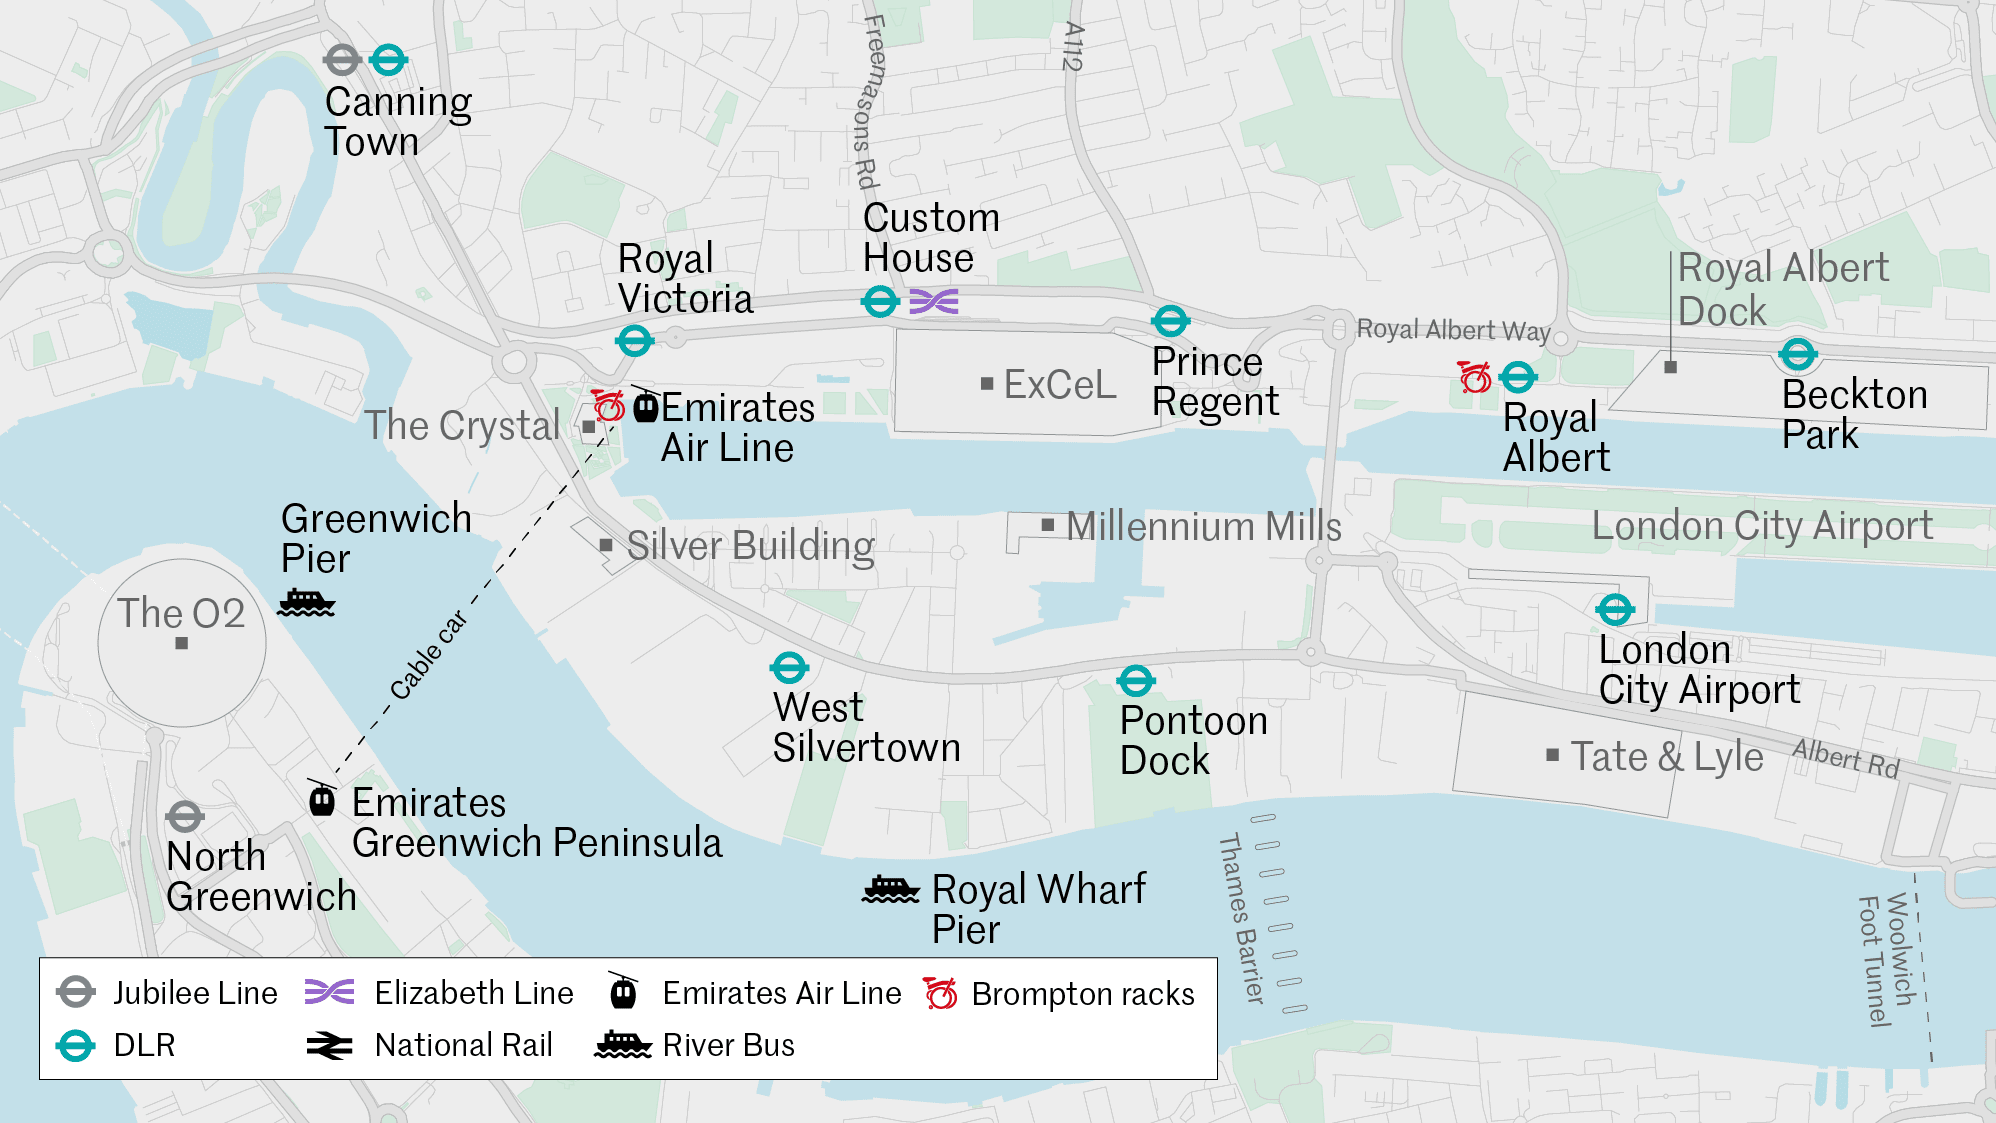 Map showing cycle locations outside the Crystal building (near the Emirates Air Line cable car) and next to Royal Albert DLR station.